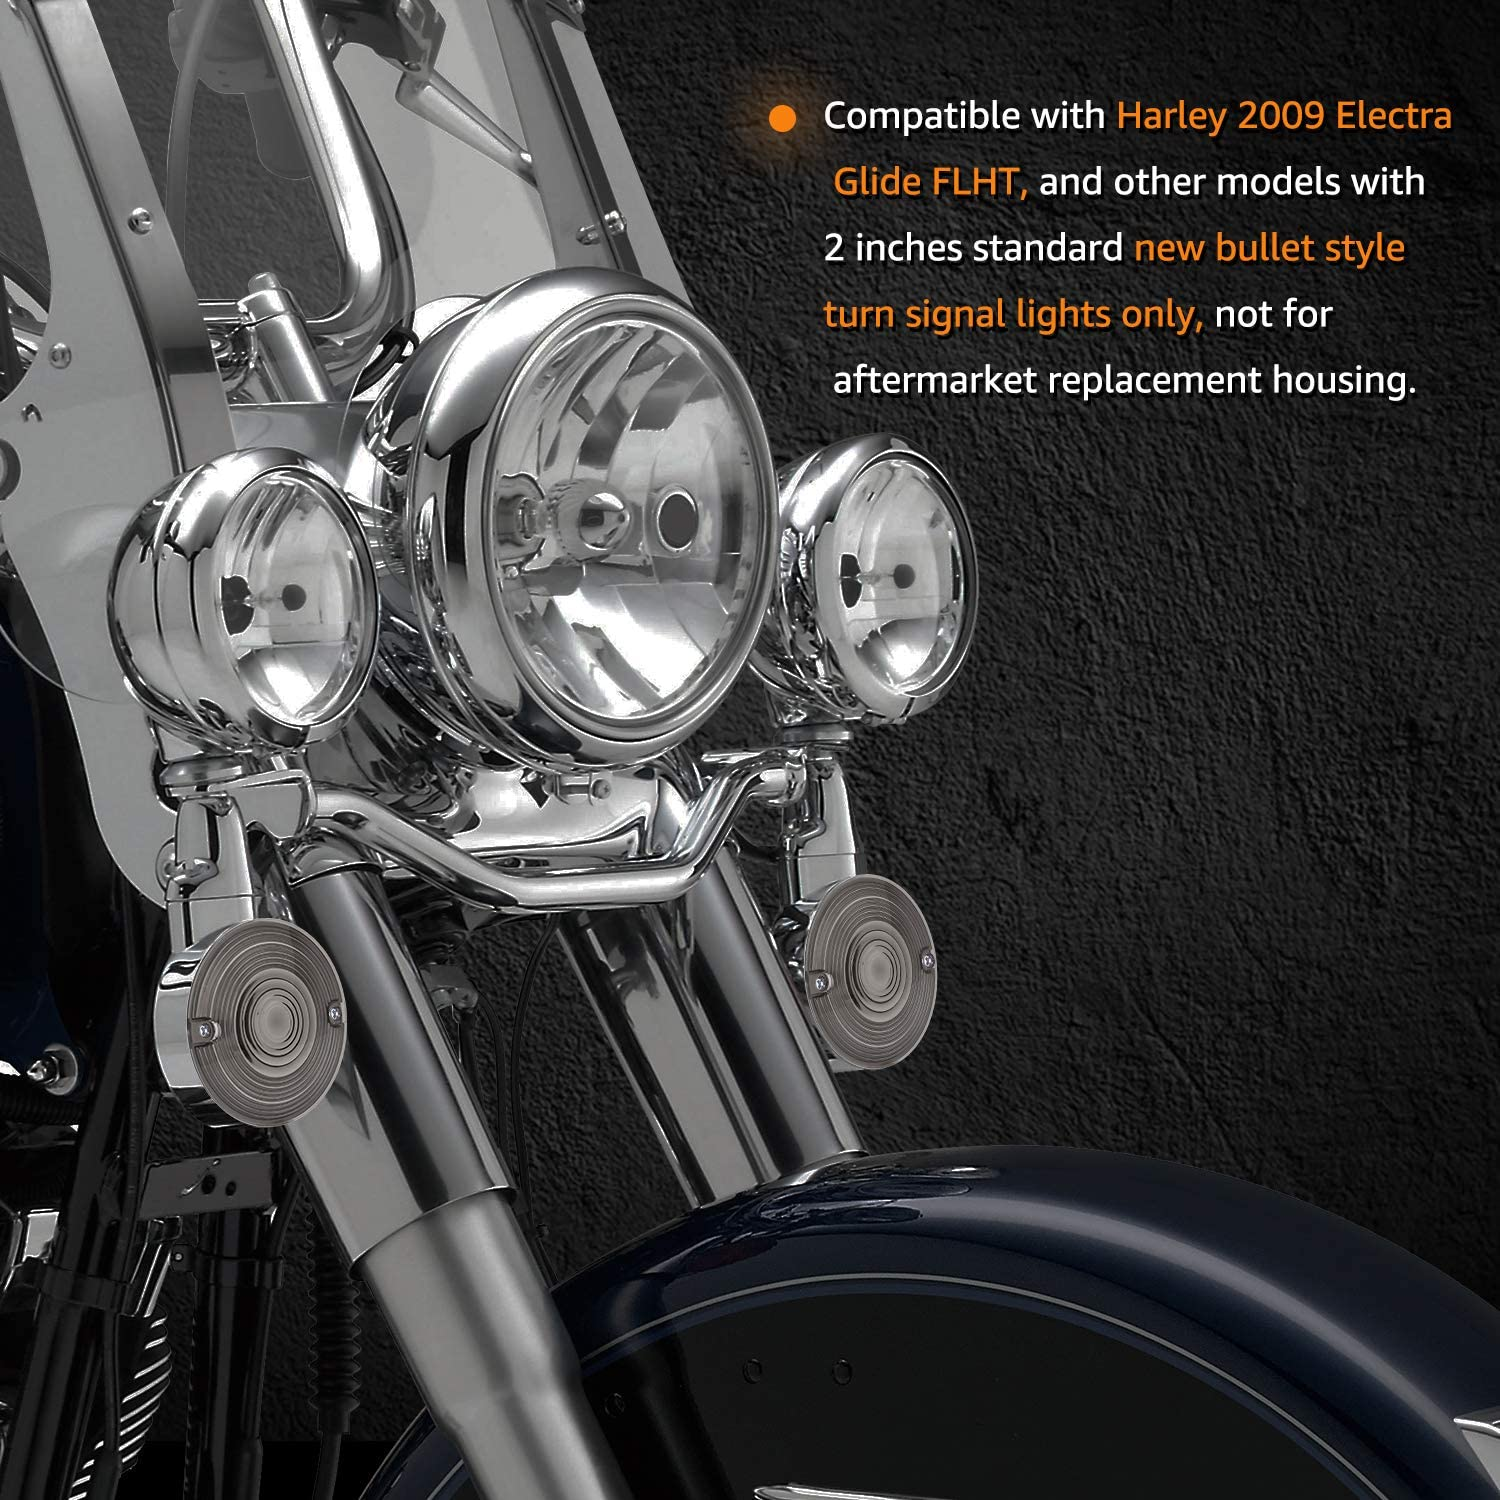 NTHREEAUTO 3 1//4 Inch Flat Smoked LED Turn Signal Lens Cover Compatible with Harley Electra Glides Road King Touring Road Glide Heritage